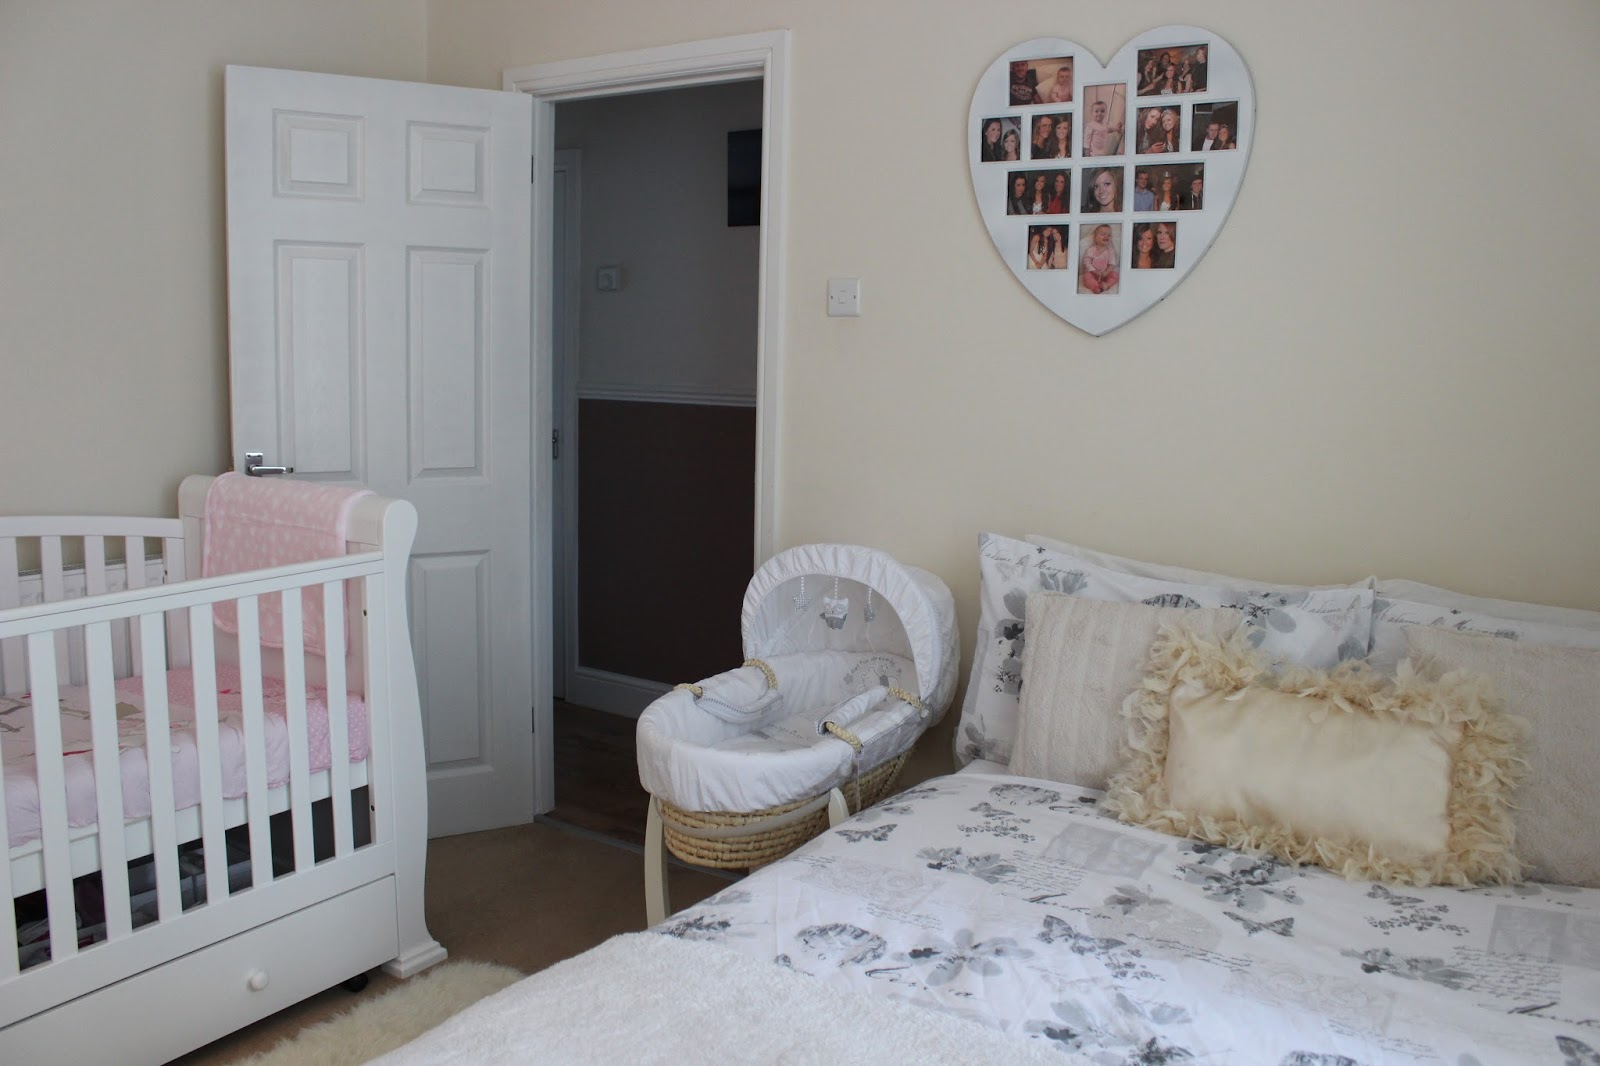 Katie Amp Baby Review On Winnie The Pooh Stary Night